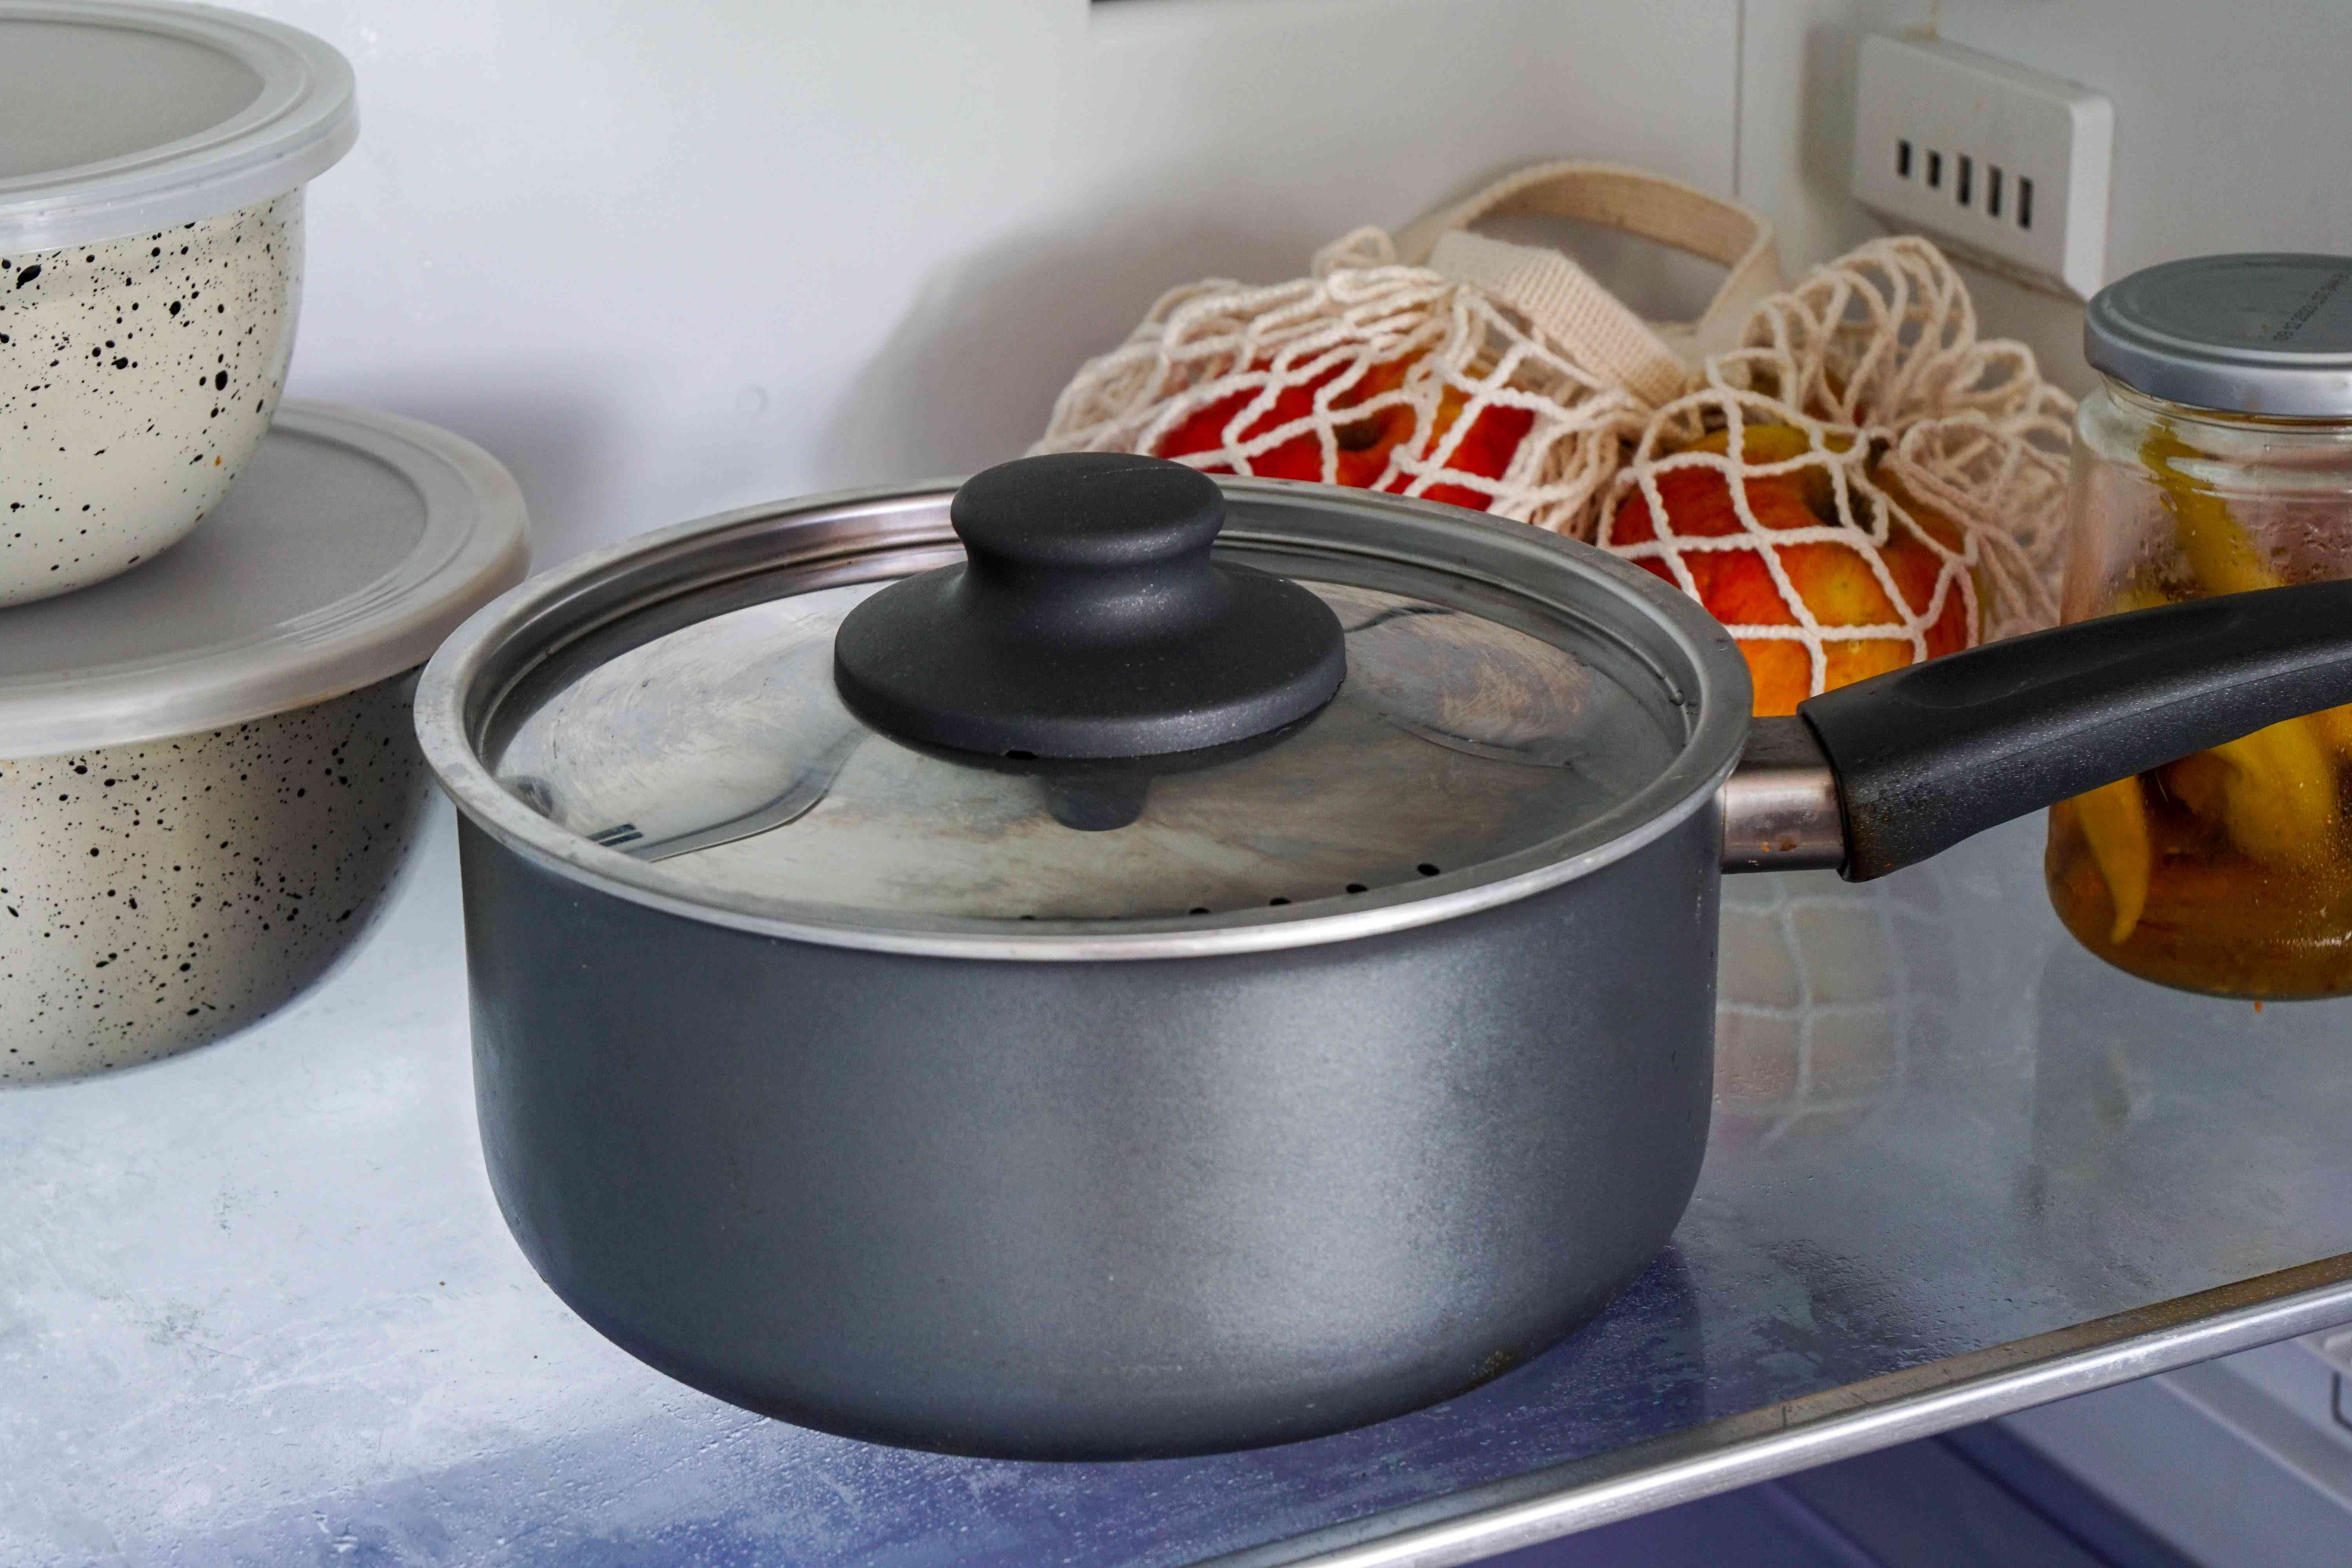 cooking pot with lid is stored inside fridge to cut down on plastic use